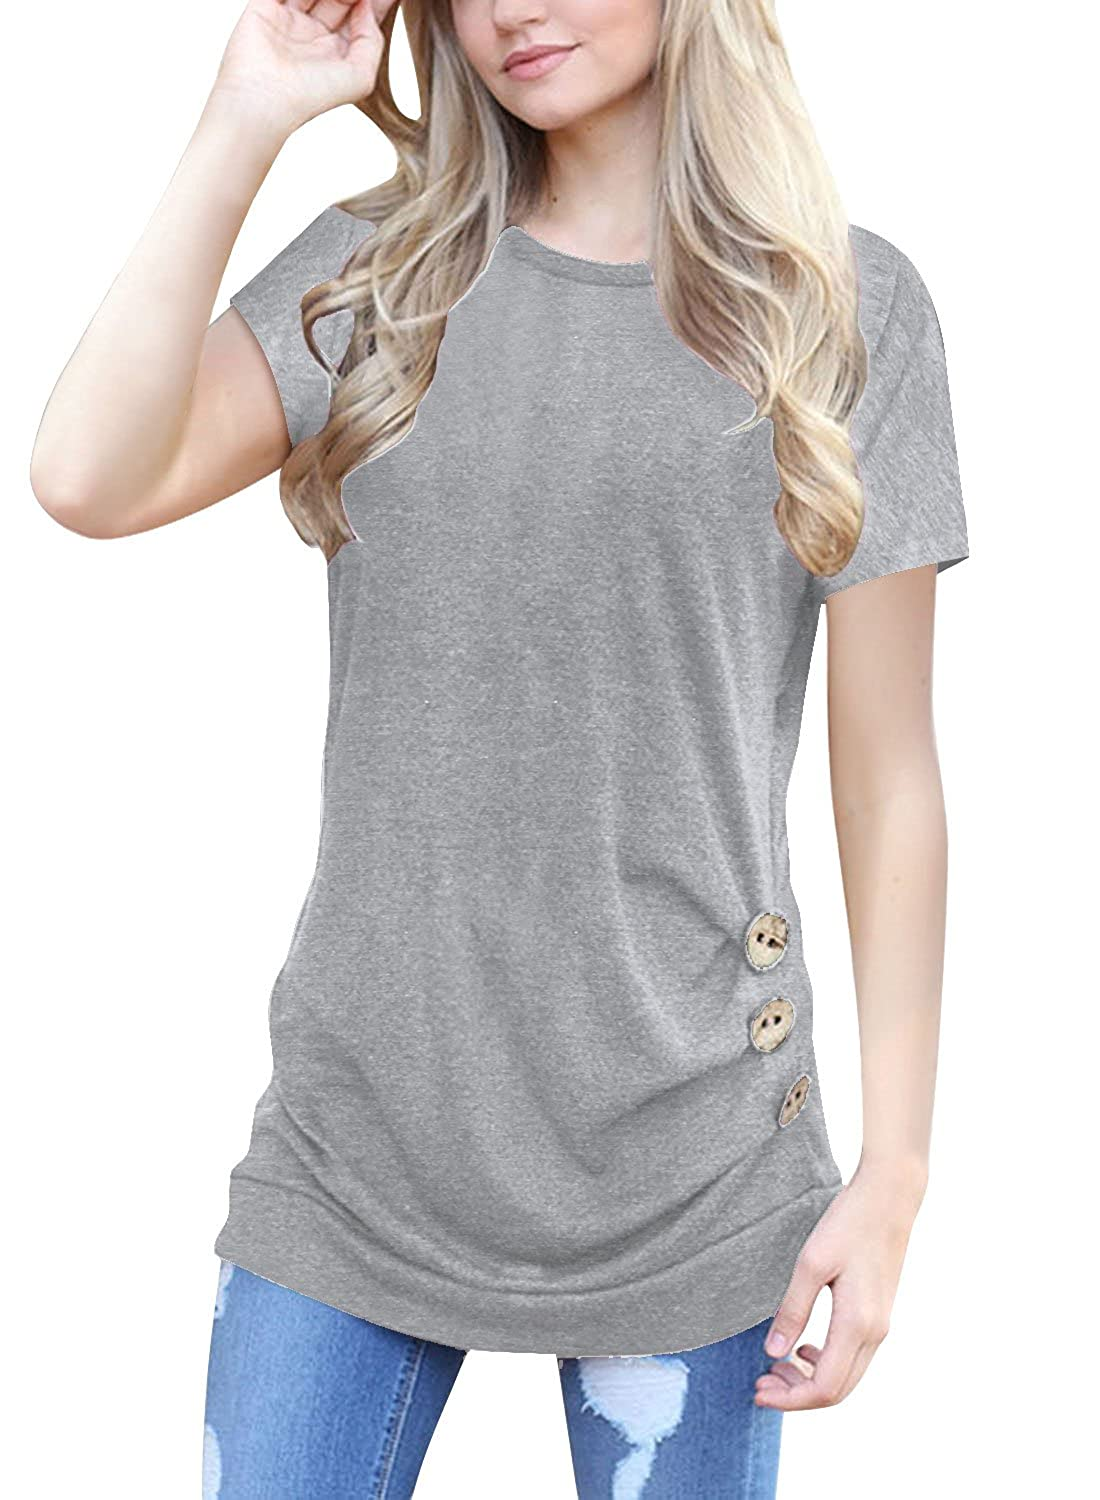 8a31cf33e34 Pull On closure. Womens Shirts: Short Sleeve Shirts For Women O-Neck Casual  Loose Blouse Button Side Tunic Tops,PLEASE CHOOSE ONE SIZE UP IF YOU NEED A  ...